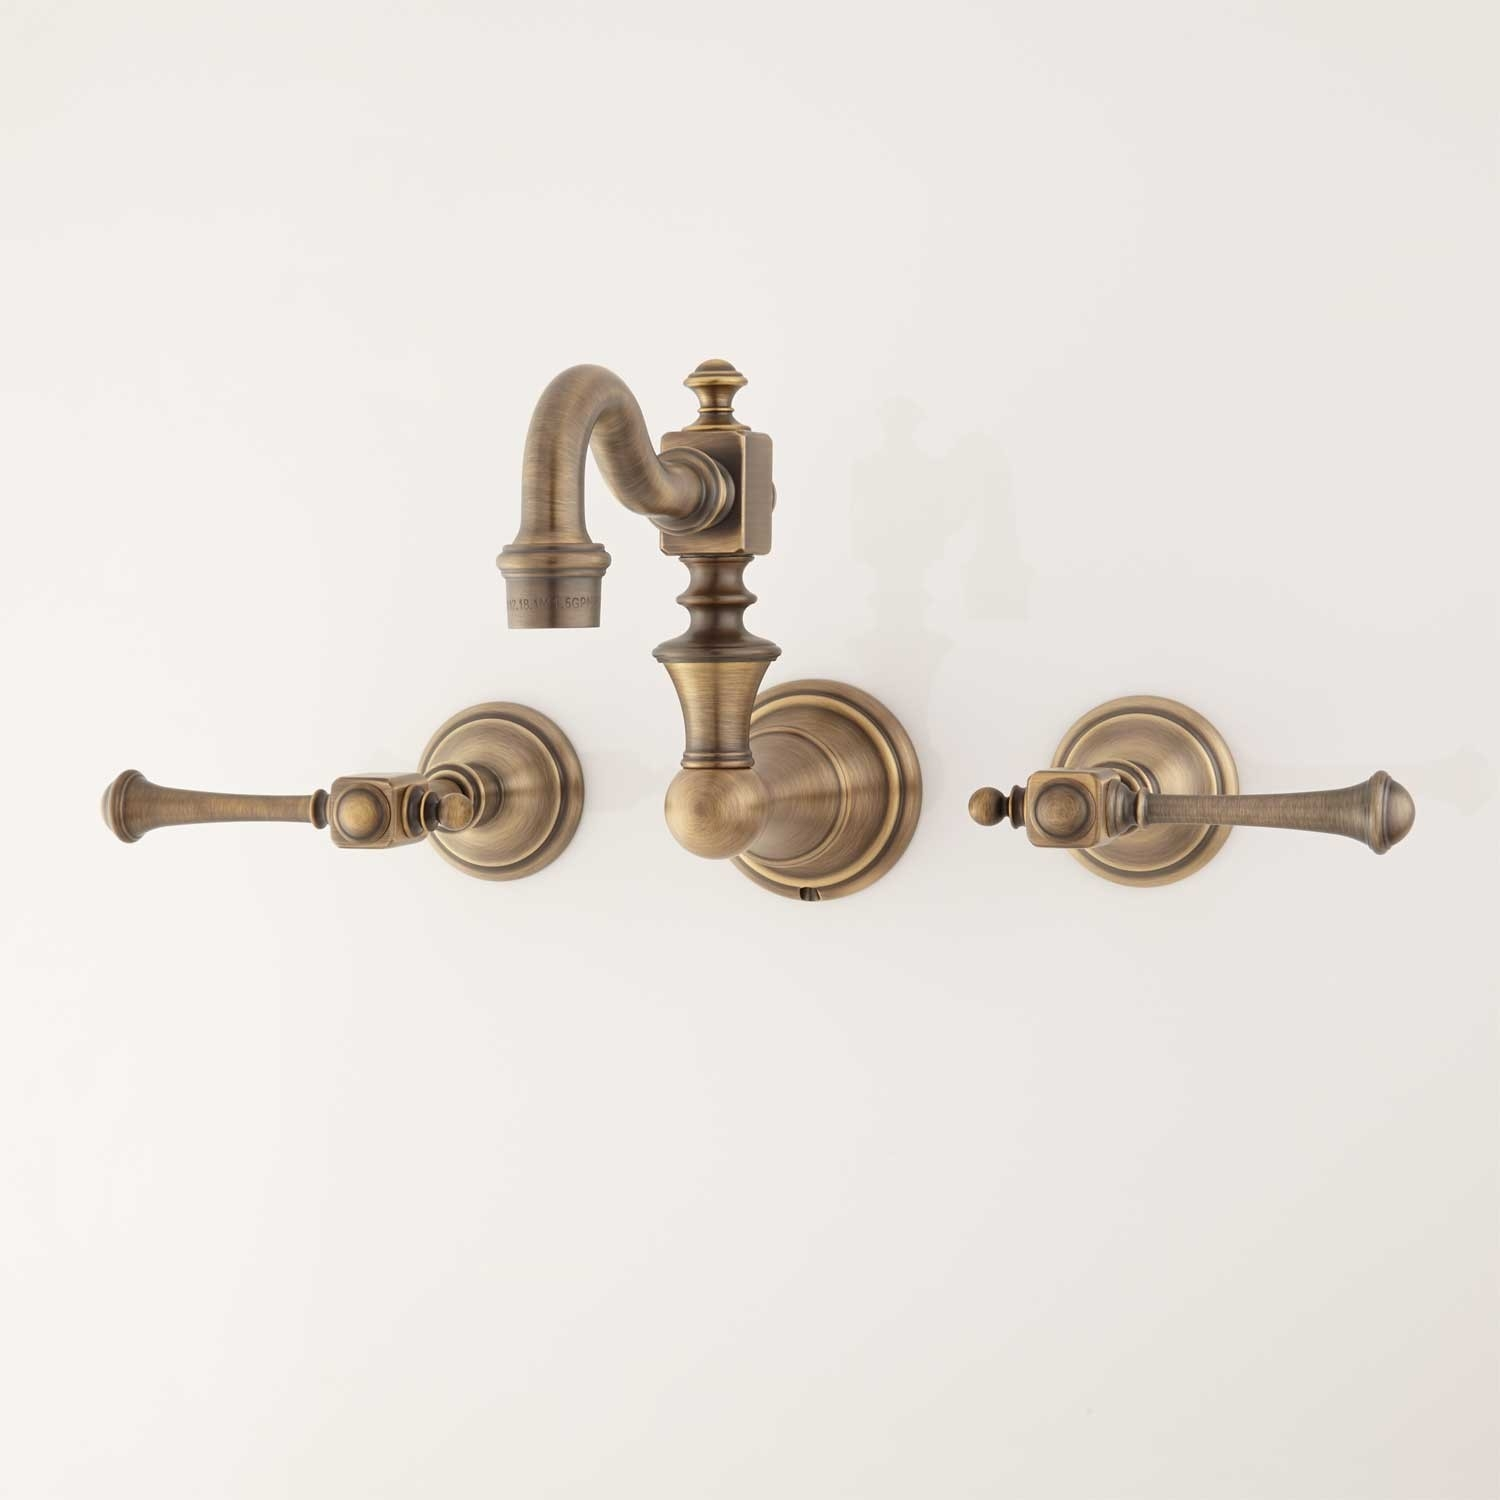 old fashioned wall mount kitchen faucets old fashioned wall mount kitchen faucets vintage wall mount kitchen faucet lever handles kitchen 1500 x 1500